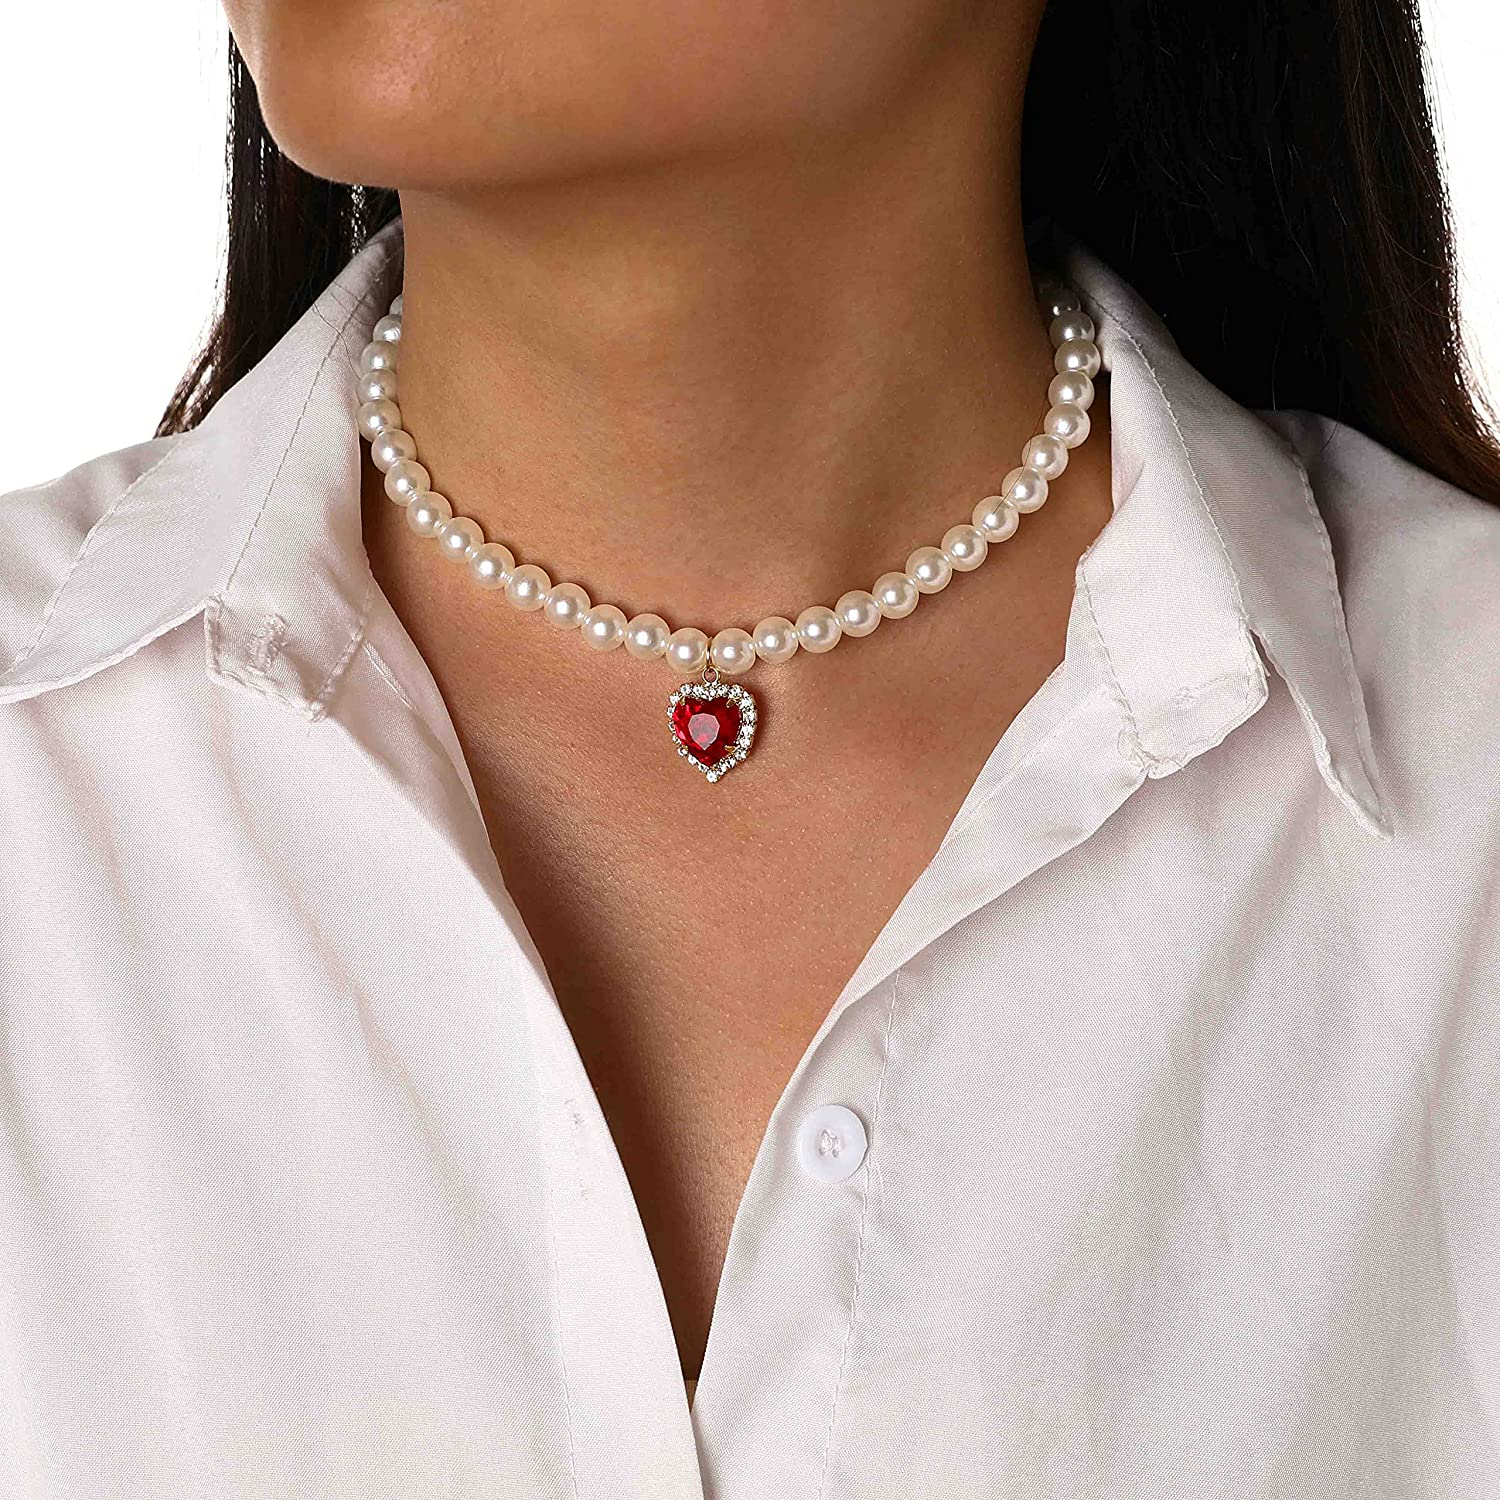 EVAZEN Pearl Choker Necklace Heart Pendant Necklaces Red Crystal Fashion Chain Jewelry for Women and Girls.